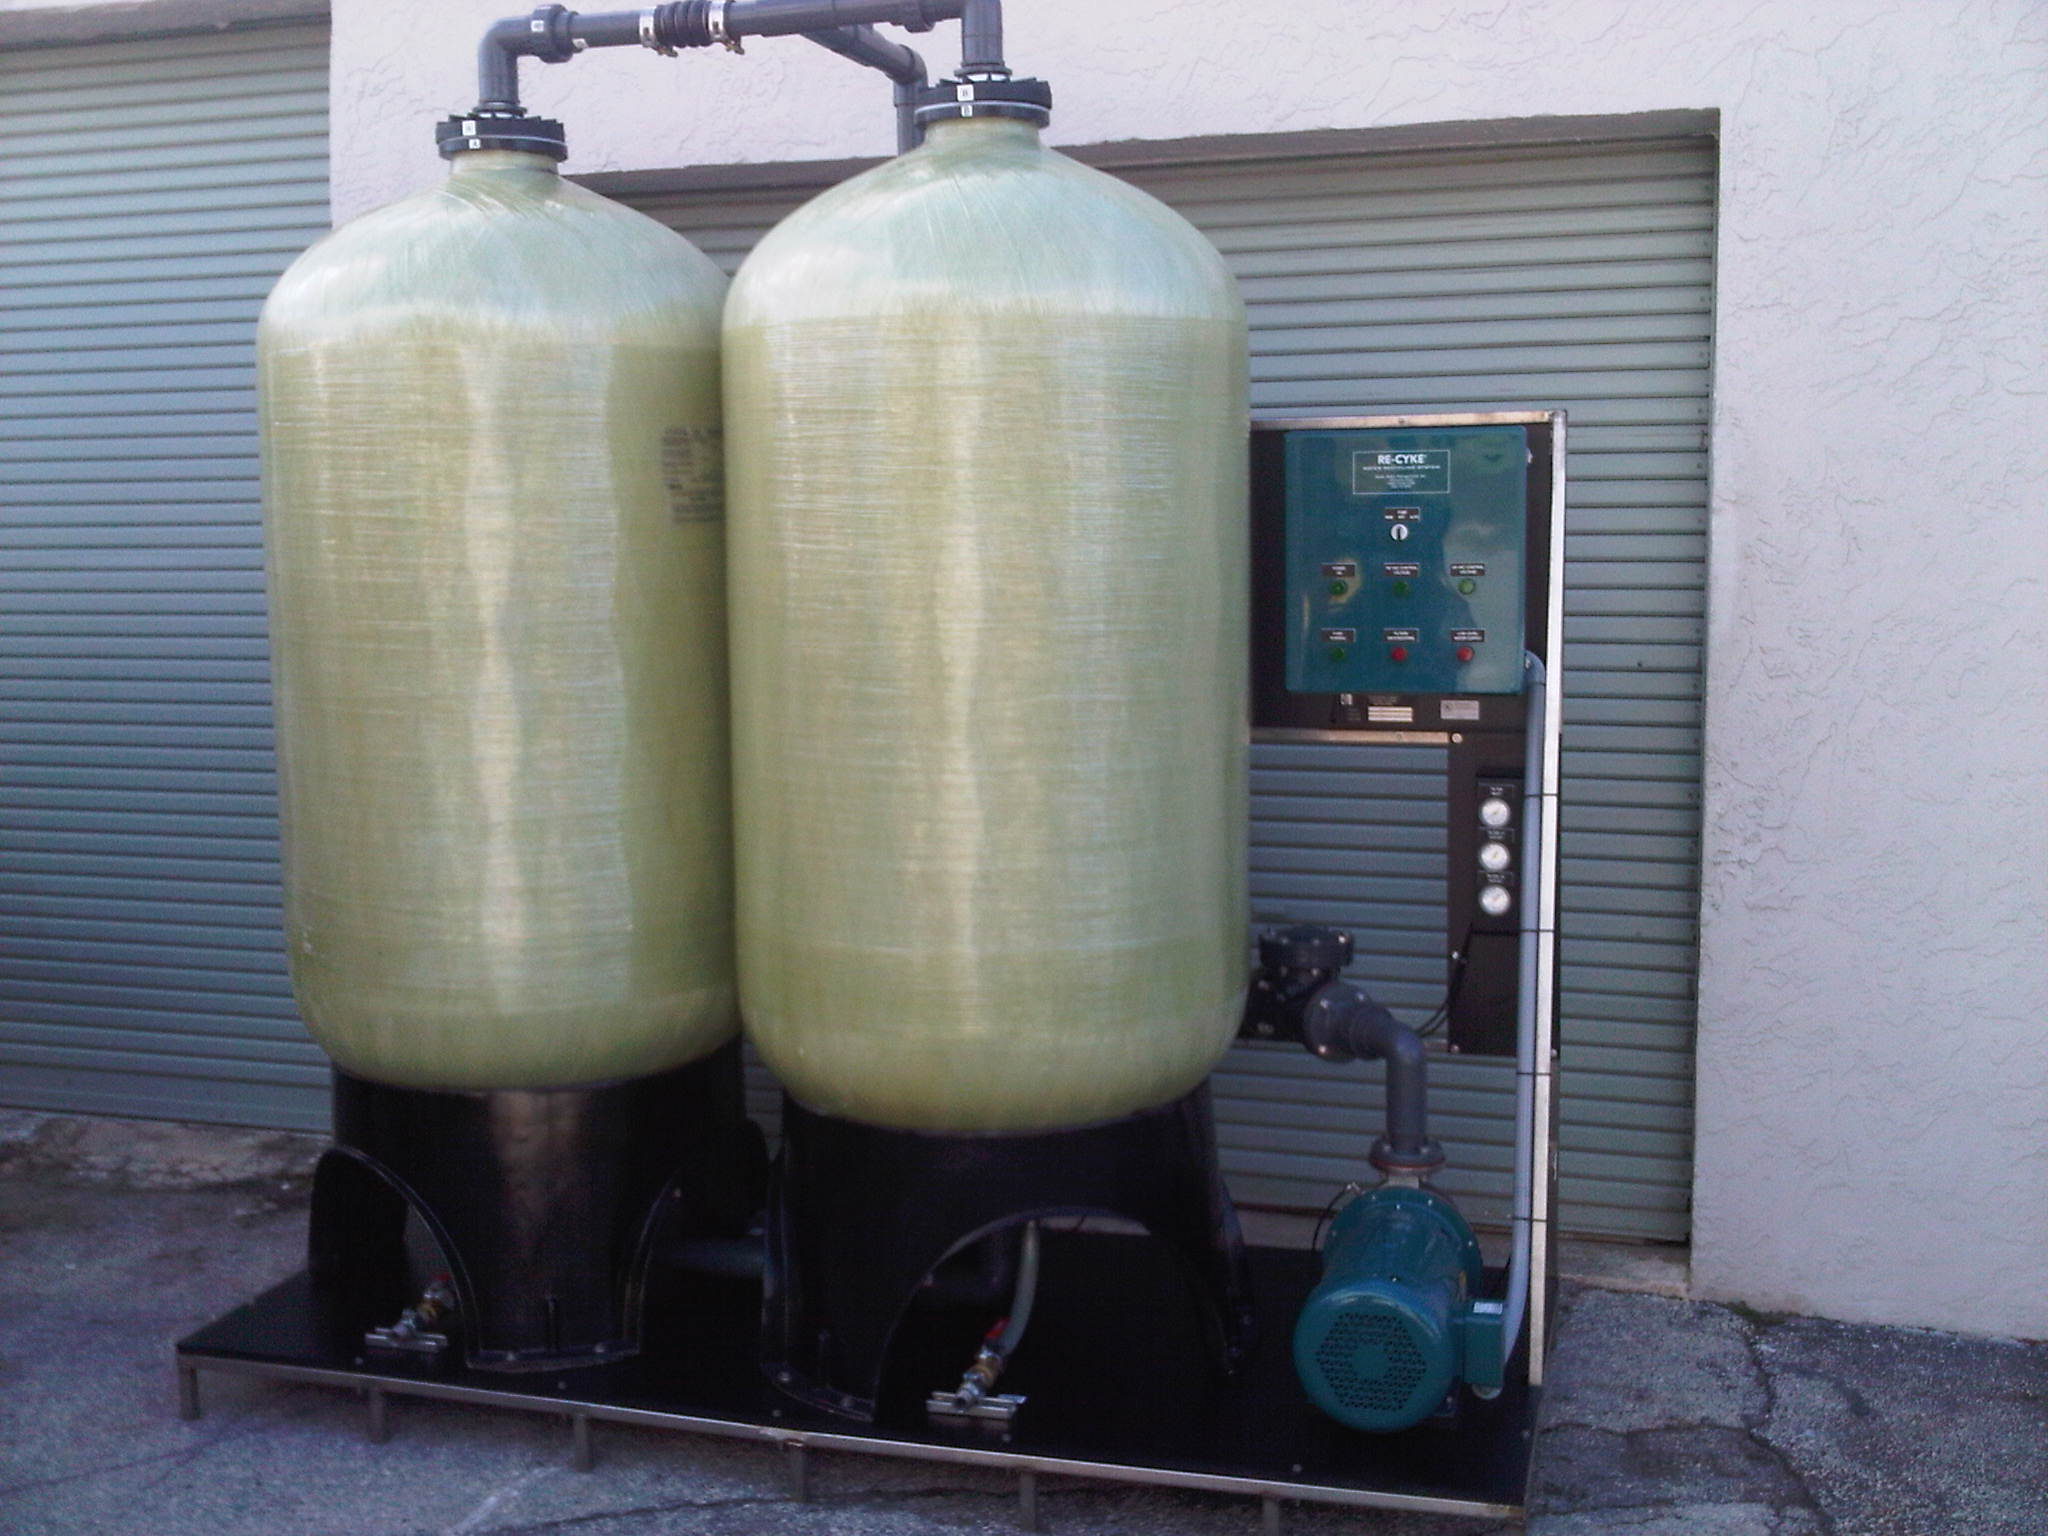 Waste Water Design Inc - filtration